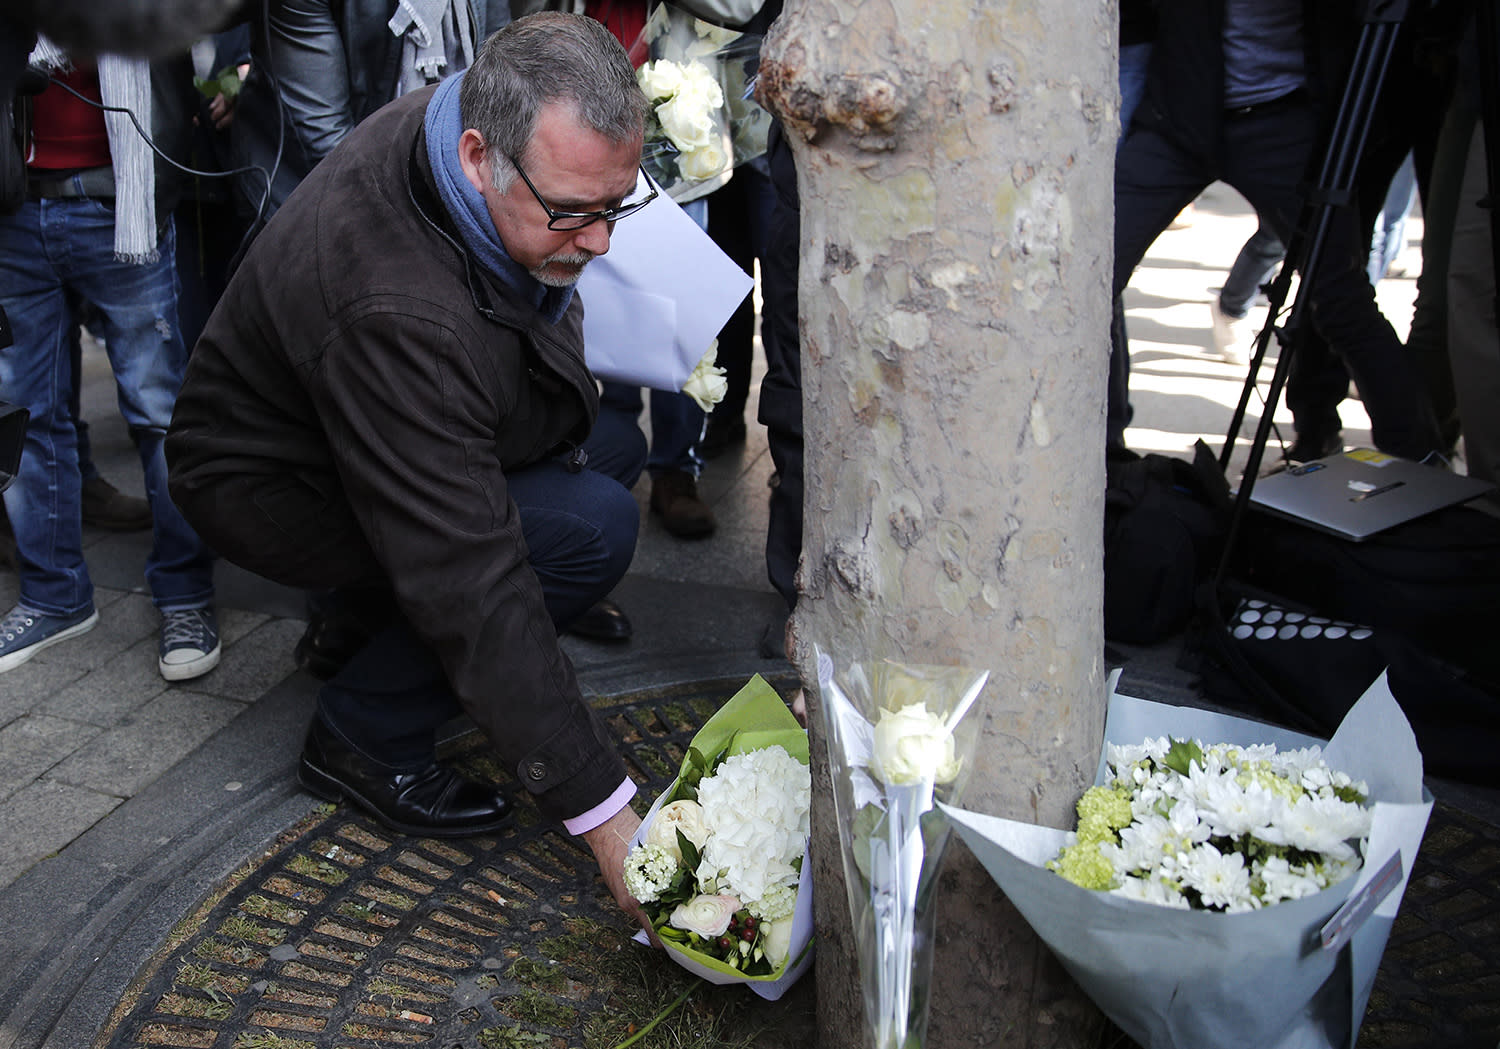 <p>Police union representative Denis Jacob lays flowers for the police officer killed in Thursday's attack, on the Champs Elysees boulevard in Paris, Friday, April 21, 2017. France began picking itself up Friday from another deadly shooting claimed by the Islamic State group, with President Francois Hollande convening the government's security council and his would-be successors in the presidential election campaign treading carefully before voting this weekend. (Photo: Christophe Ena/AP) </p>